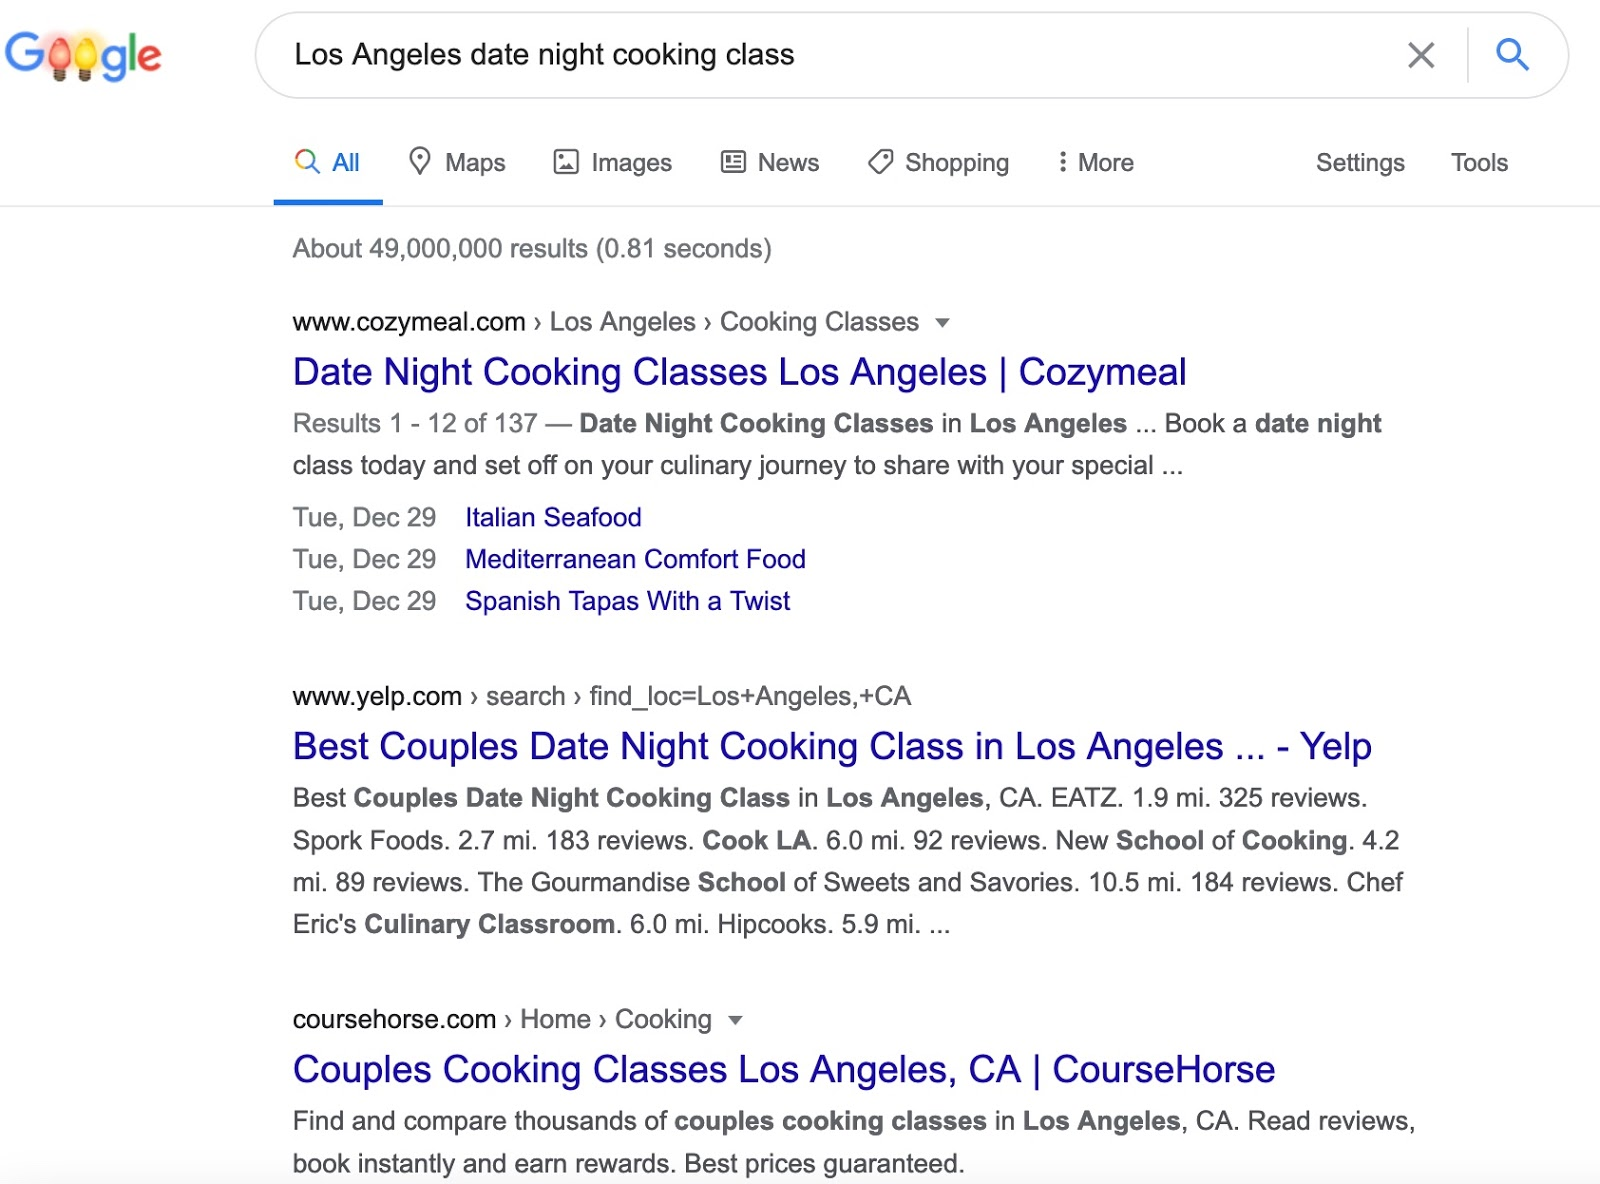 Los Angeles Cooking Class